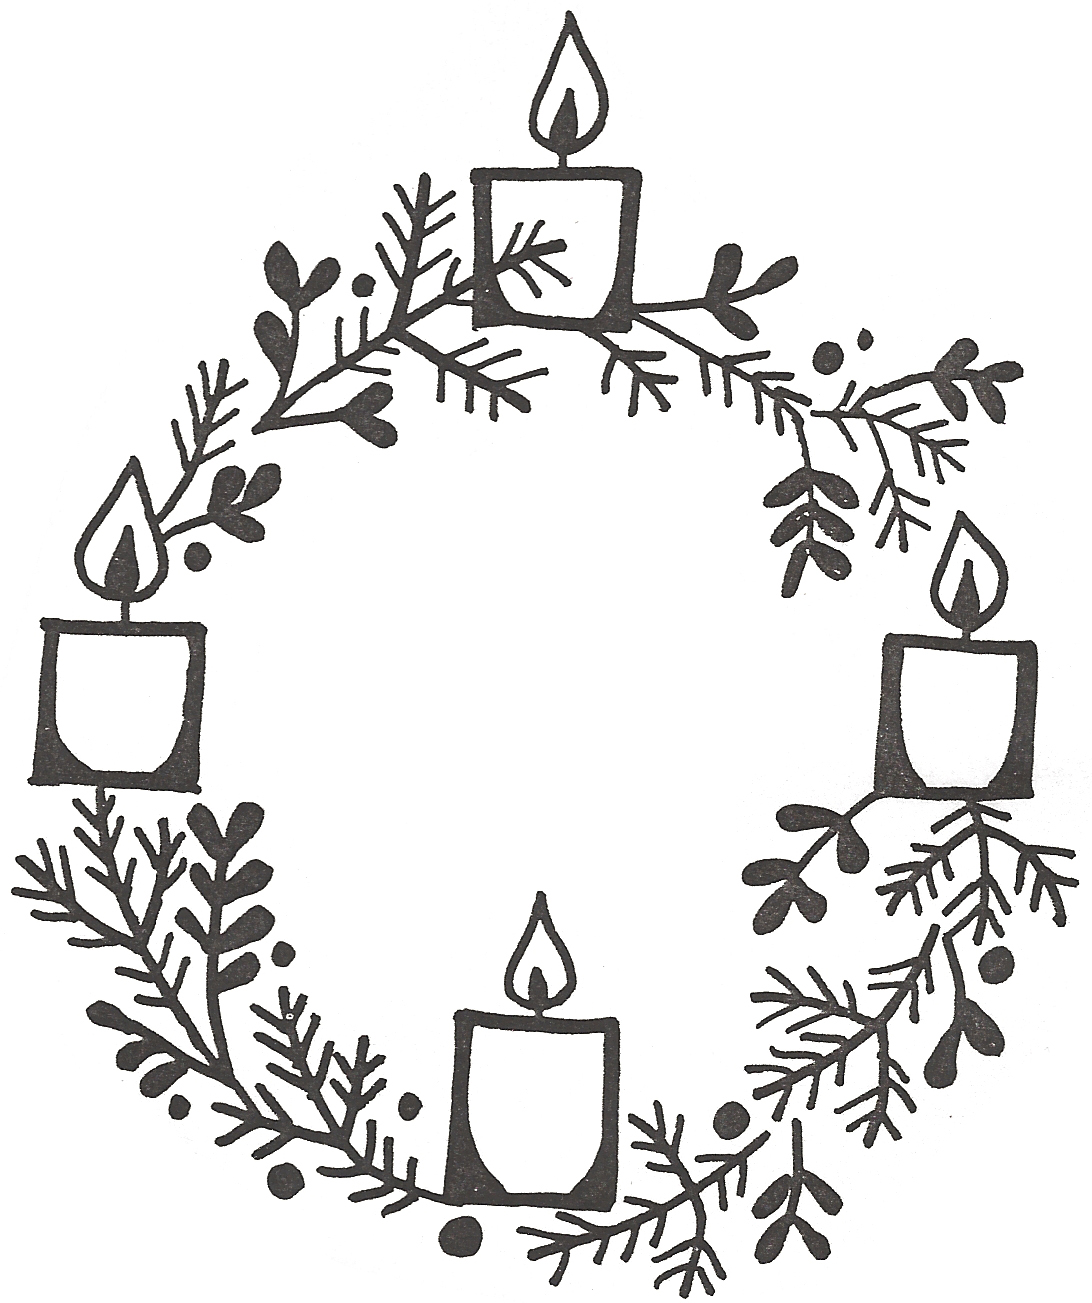 Advent season 2018 clipart clip art royalty free library Clipart advent wreath clip art – Gclipart.com clip art royalty free library